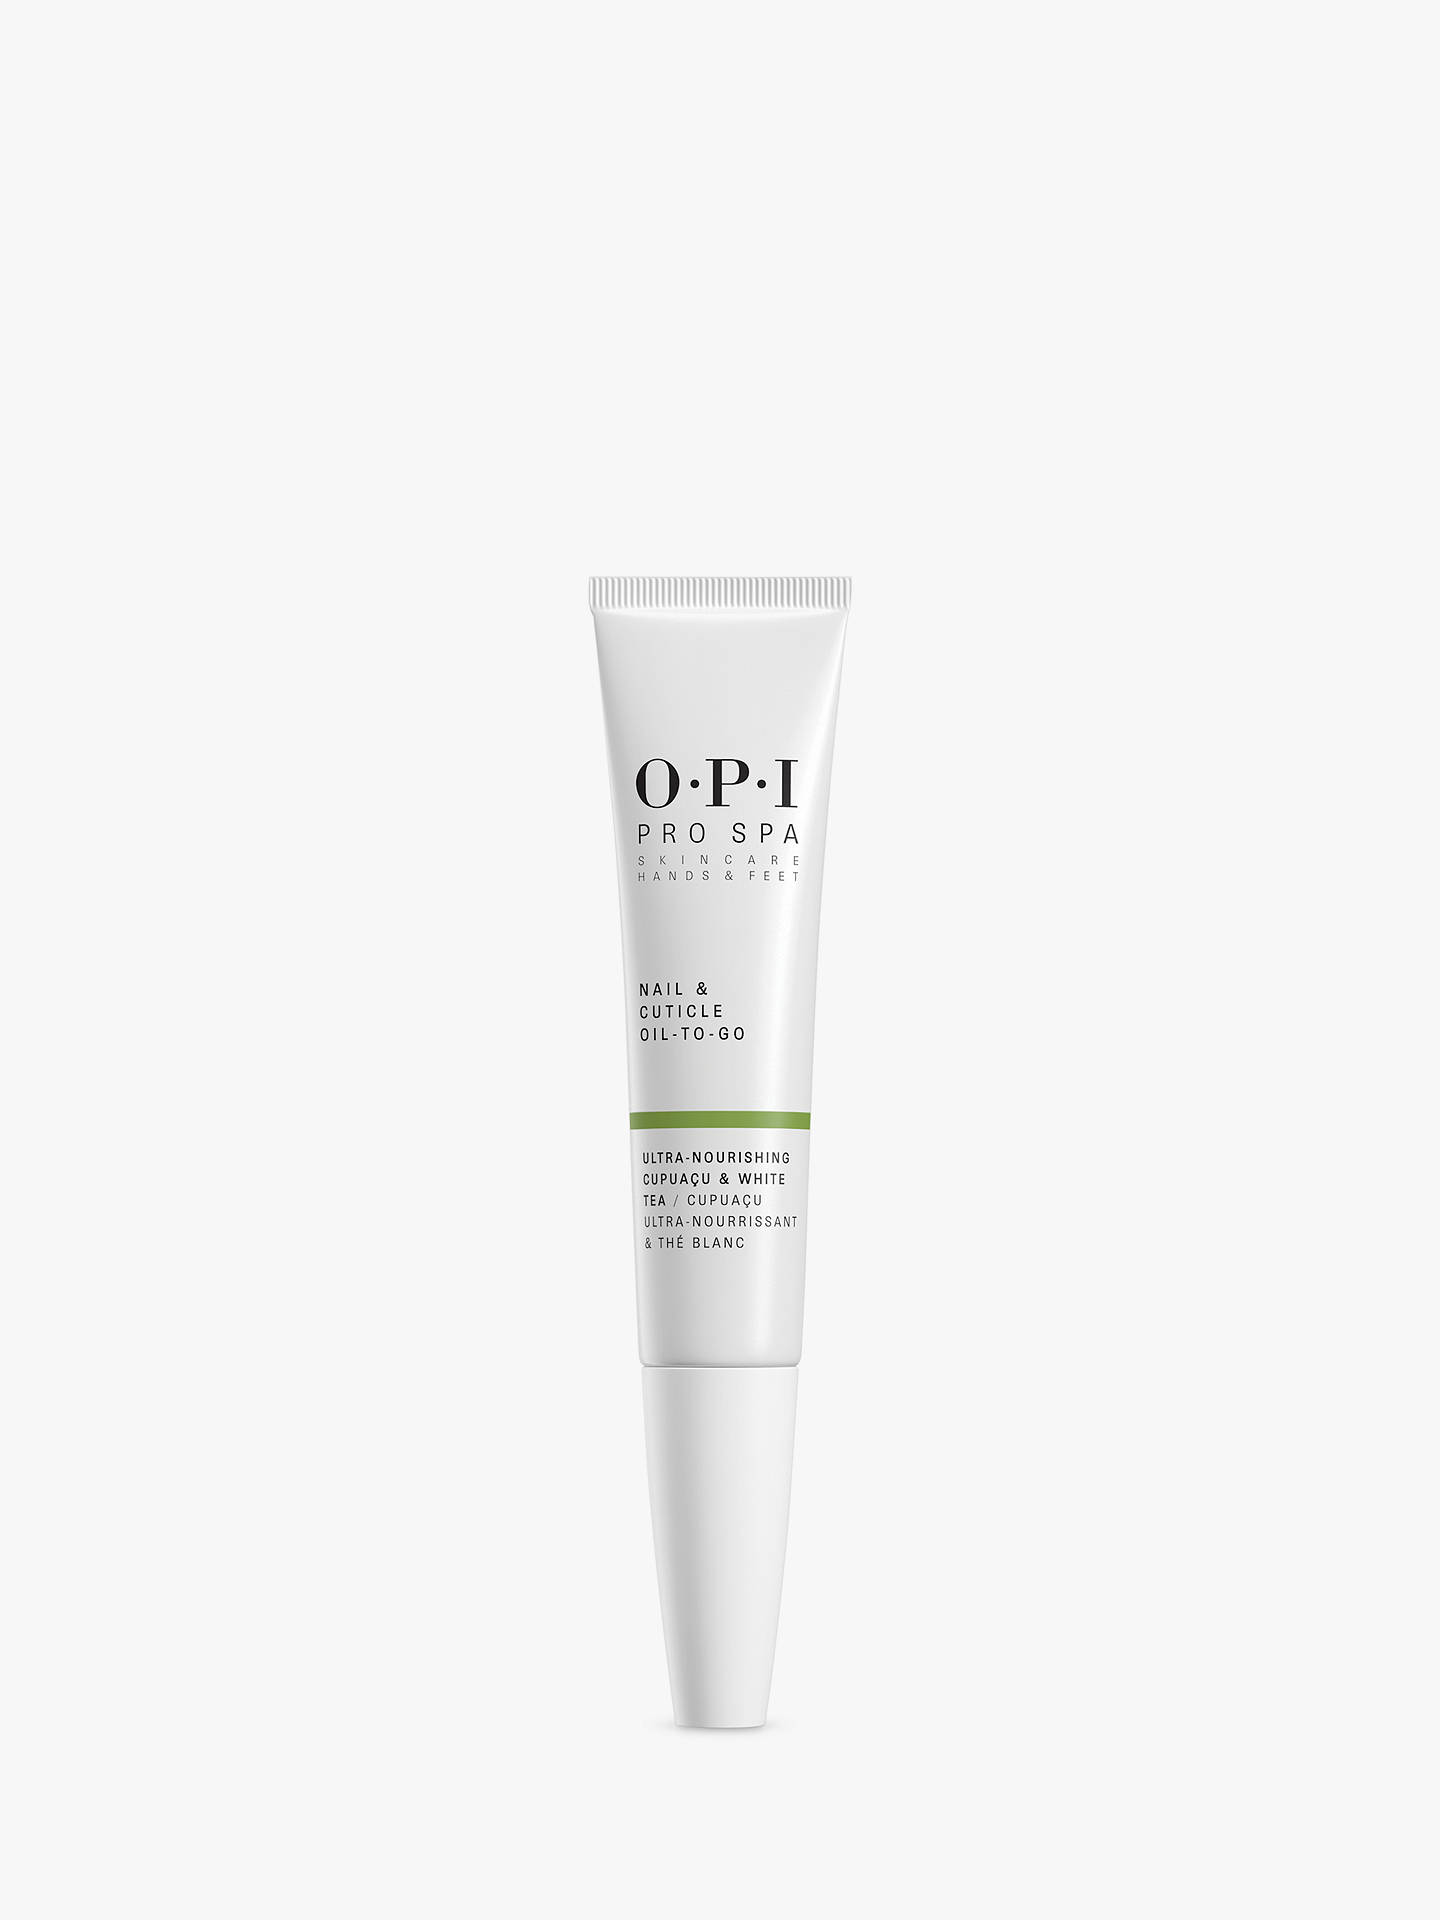 247c32ab OPI Pro Spa Nail & Cuticle Oil-To-Go, 7.5ml at John Lewis & Partners